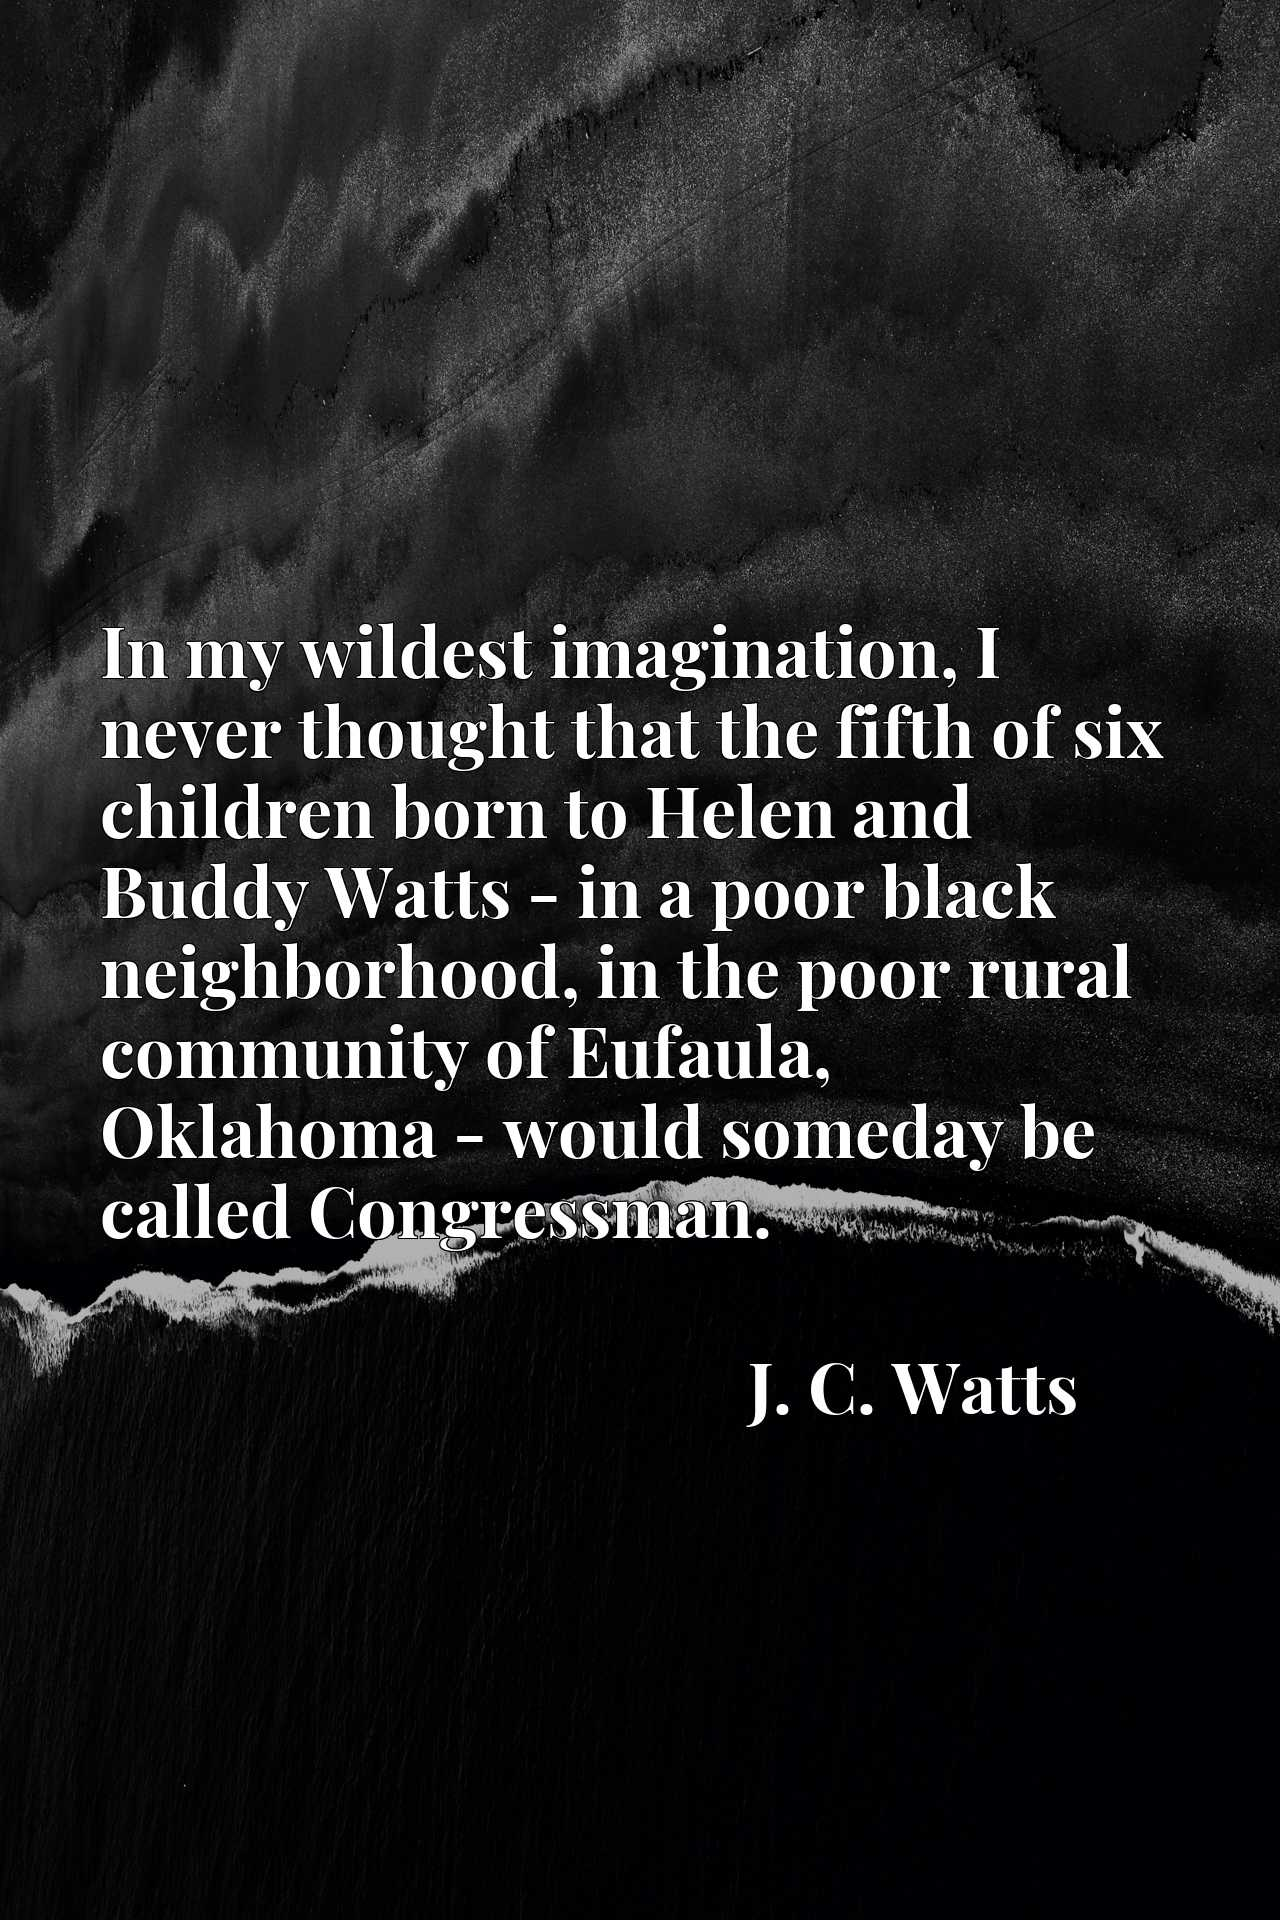 Quote Picture :In my wildest imagination, I never thought that the fifth of six children born to Helen and Buddy Watts - in a poor black neighborhood, in the poor rural community of Eufaula, Oklahoma - would someday be called Congressman.